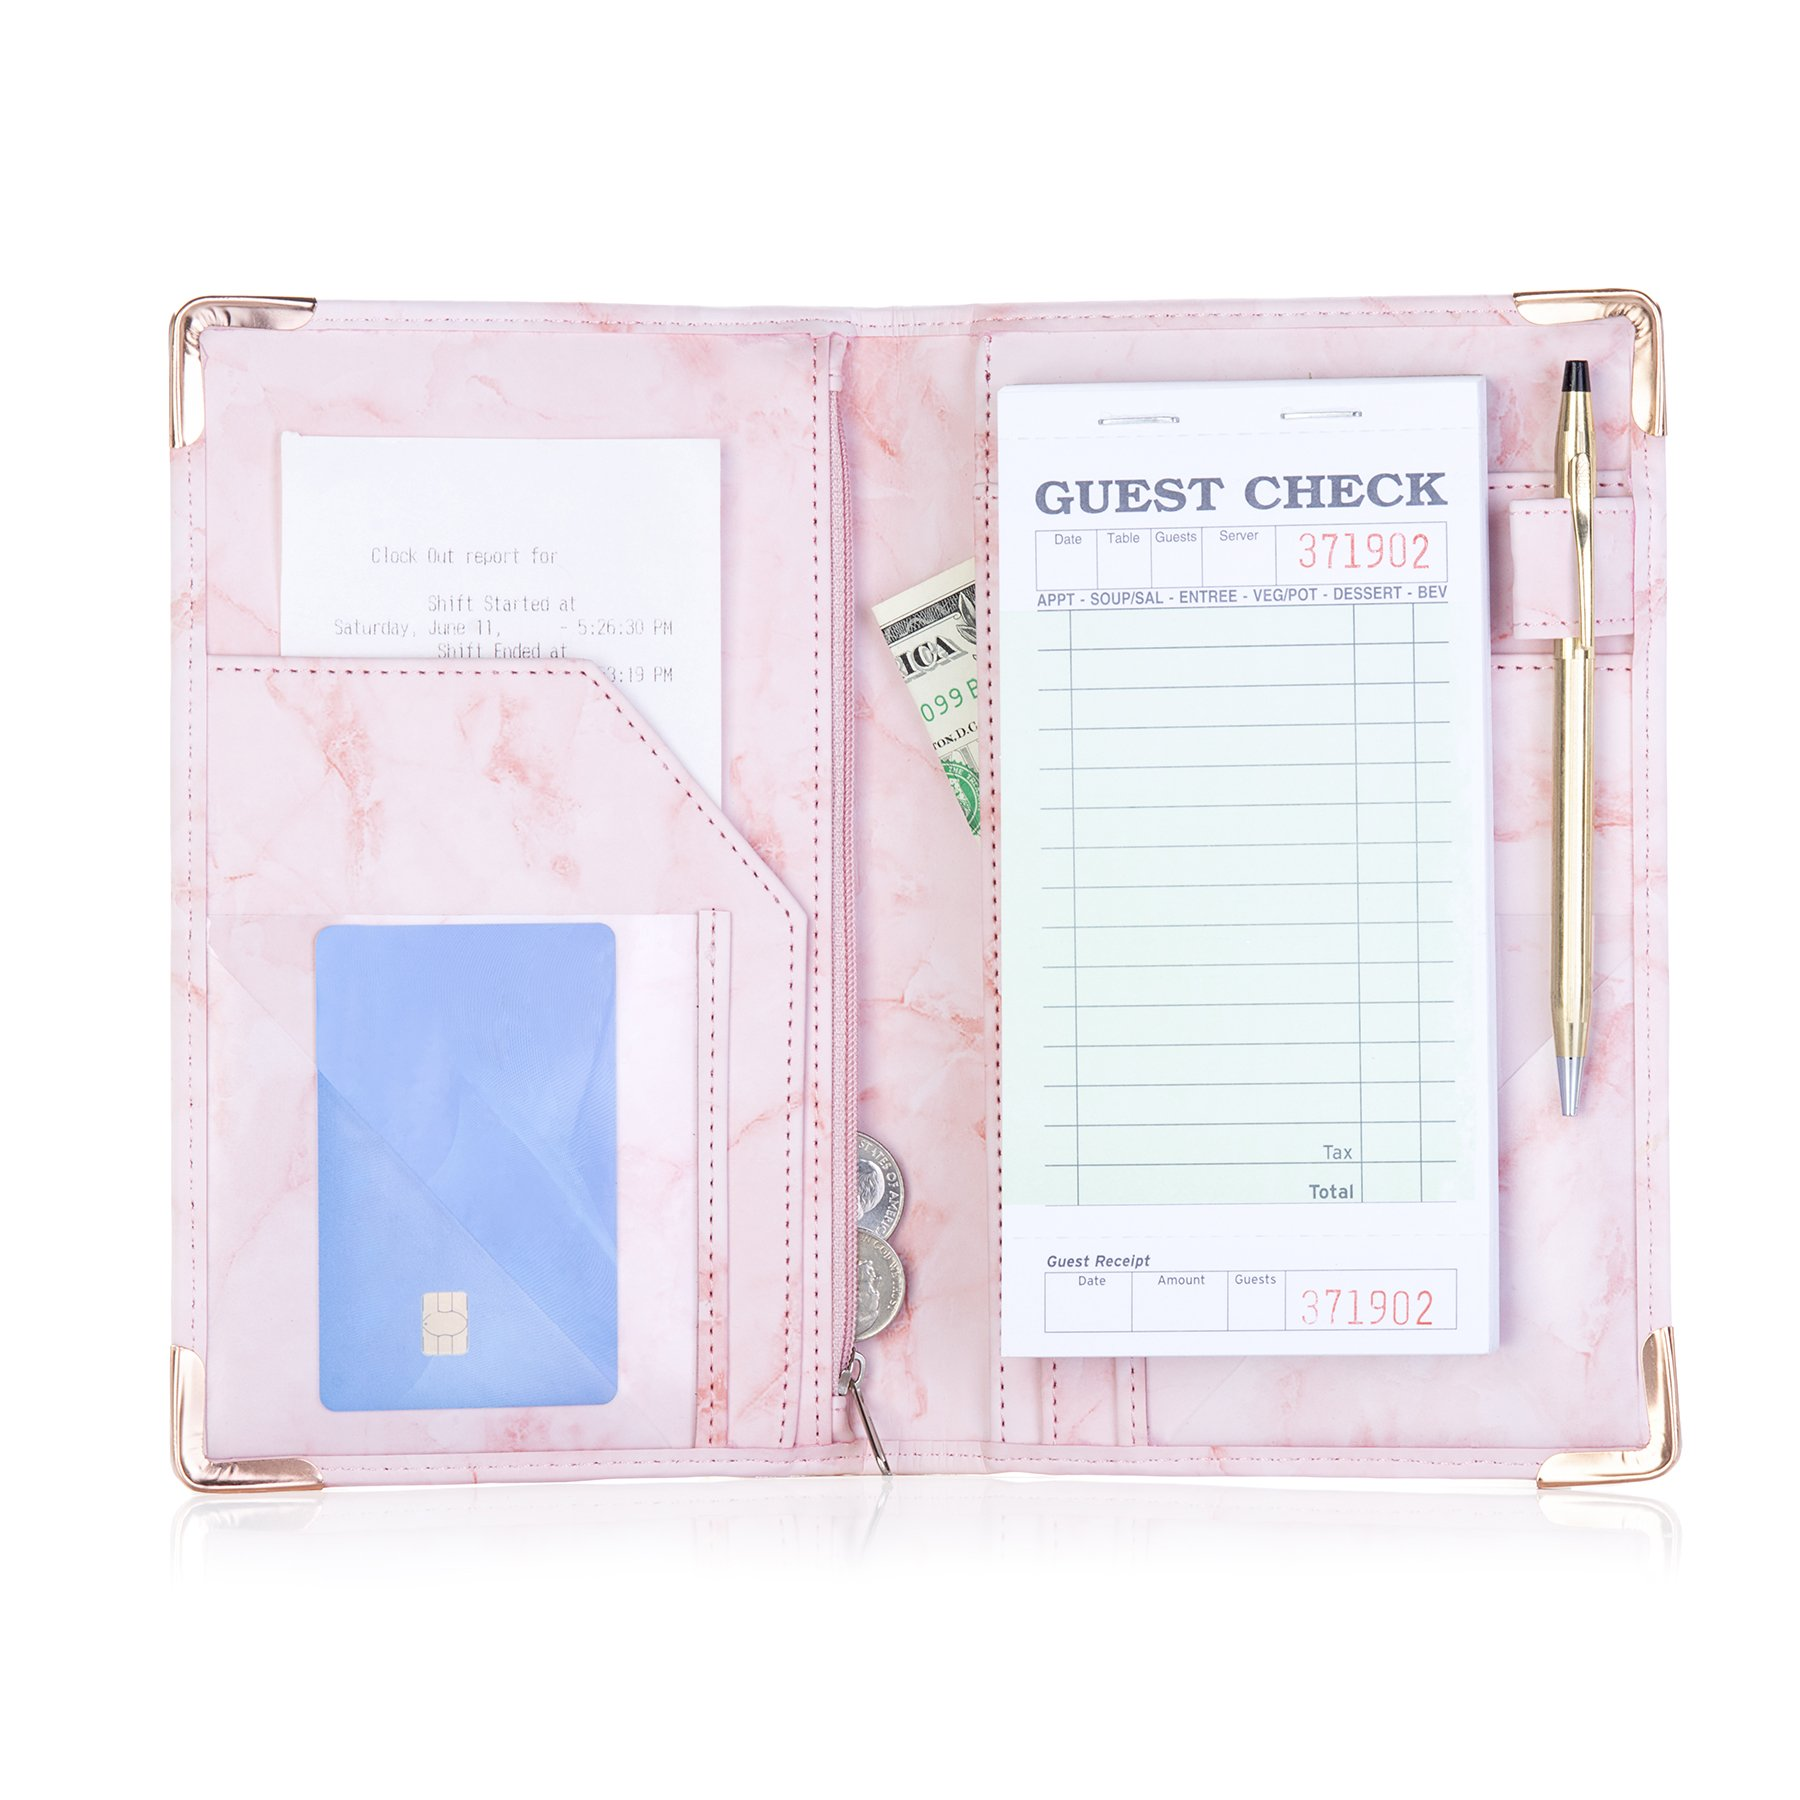 Sonic Server Marble Style Deluxe Server Book for Restaurant Waiter Waitress Waitstaff | Millennial Pink | 9 Pockets includes Zipper Pouch with Pen Holder | Holds Guest Checks, Money, Order Pad